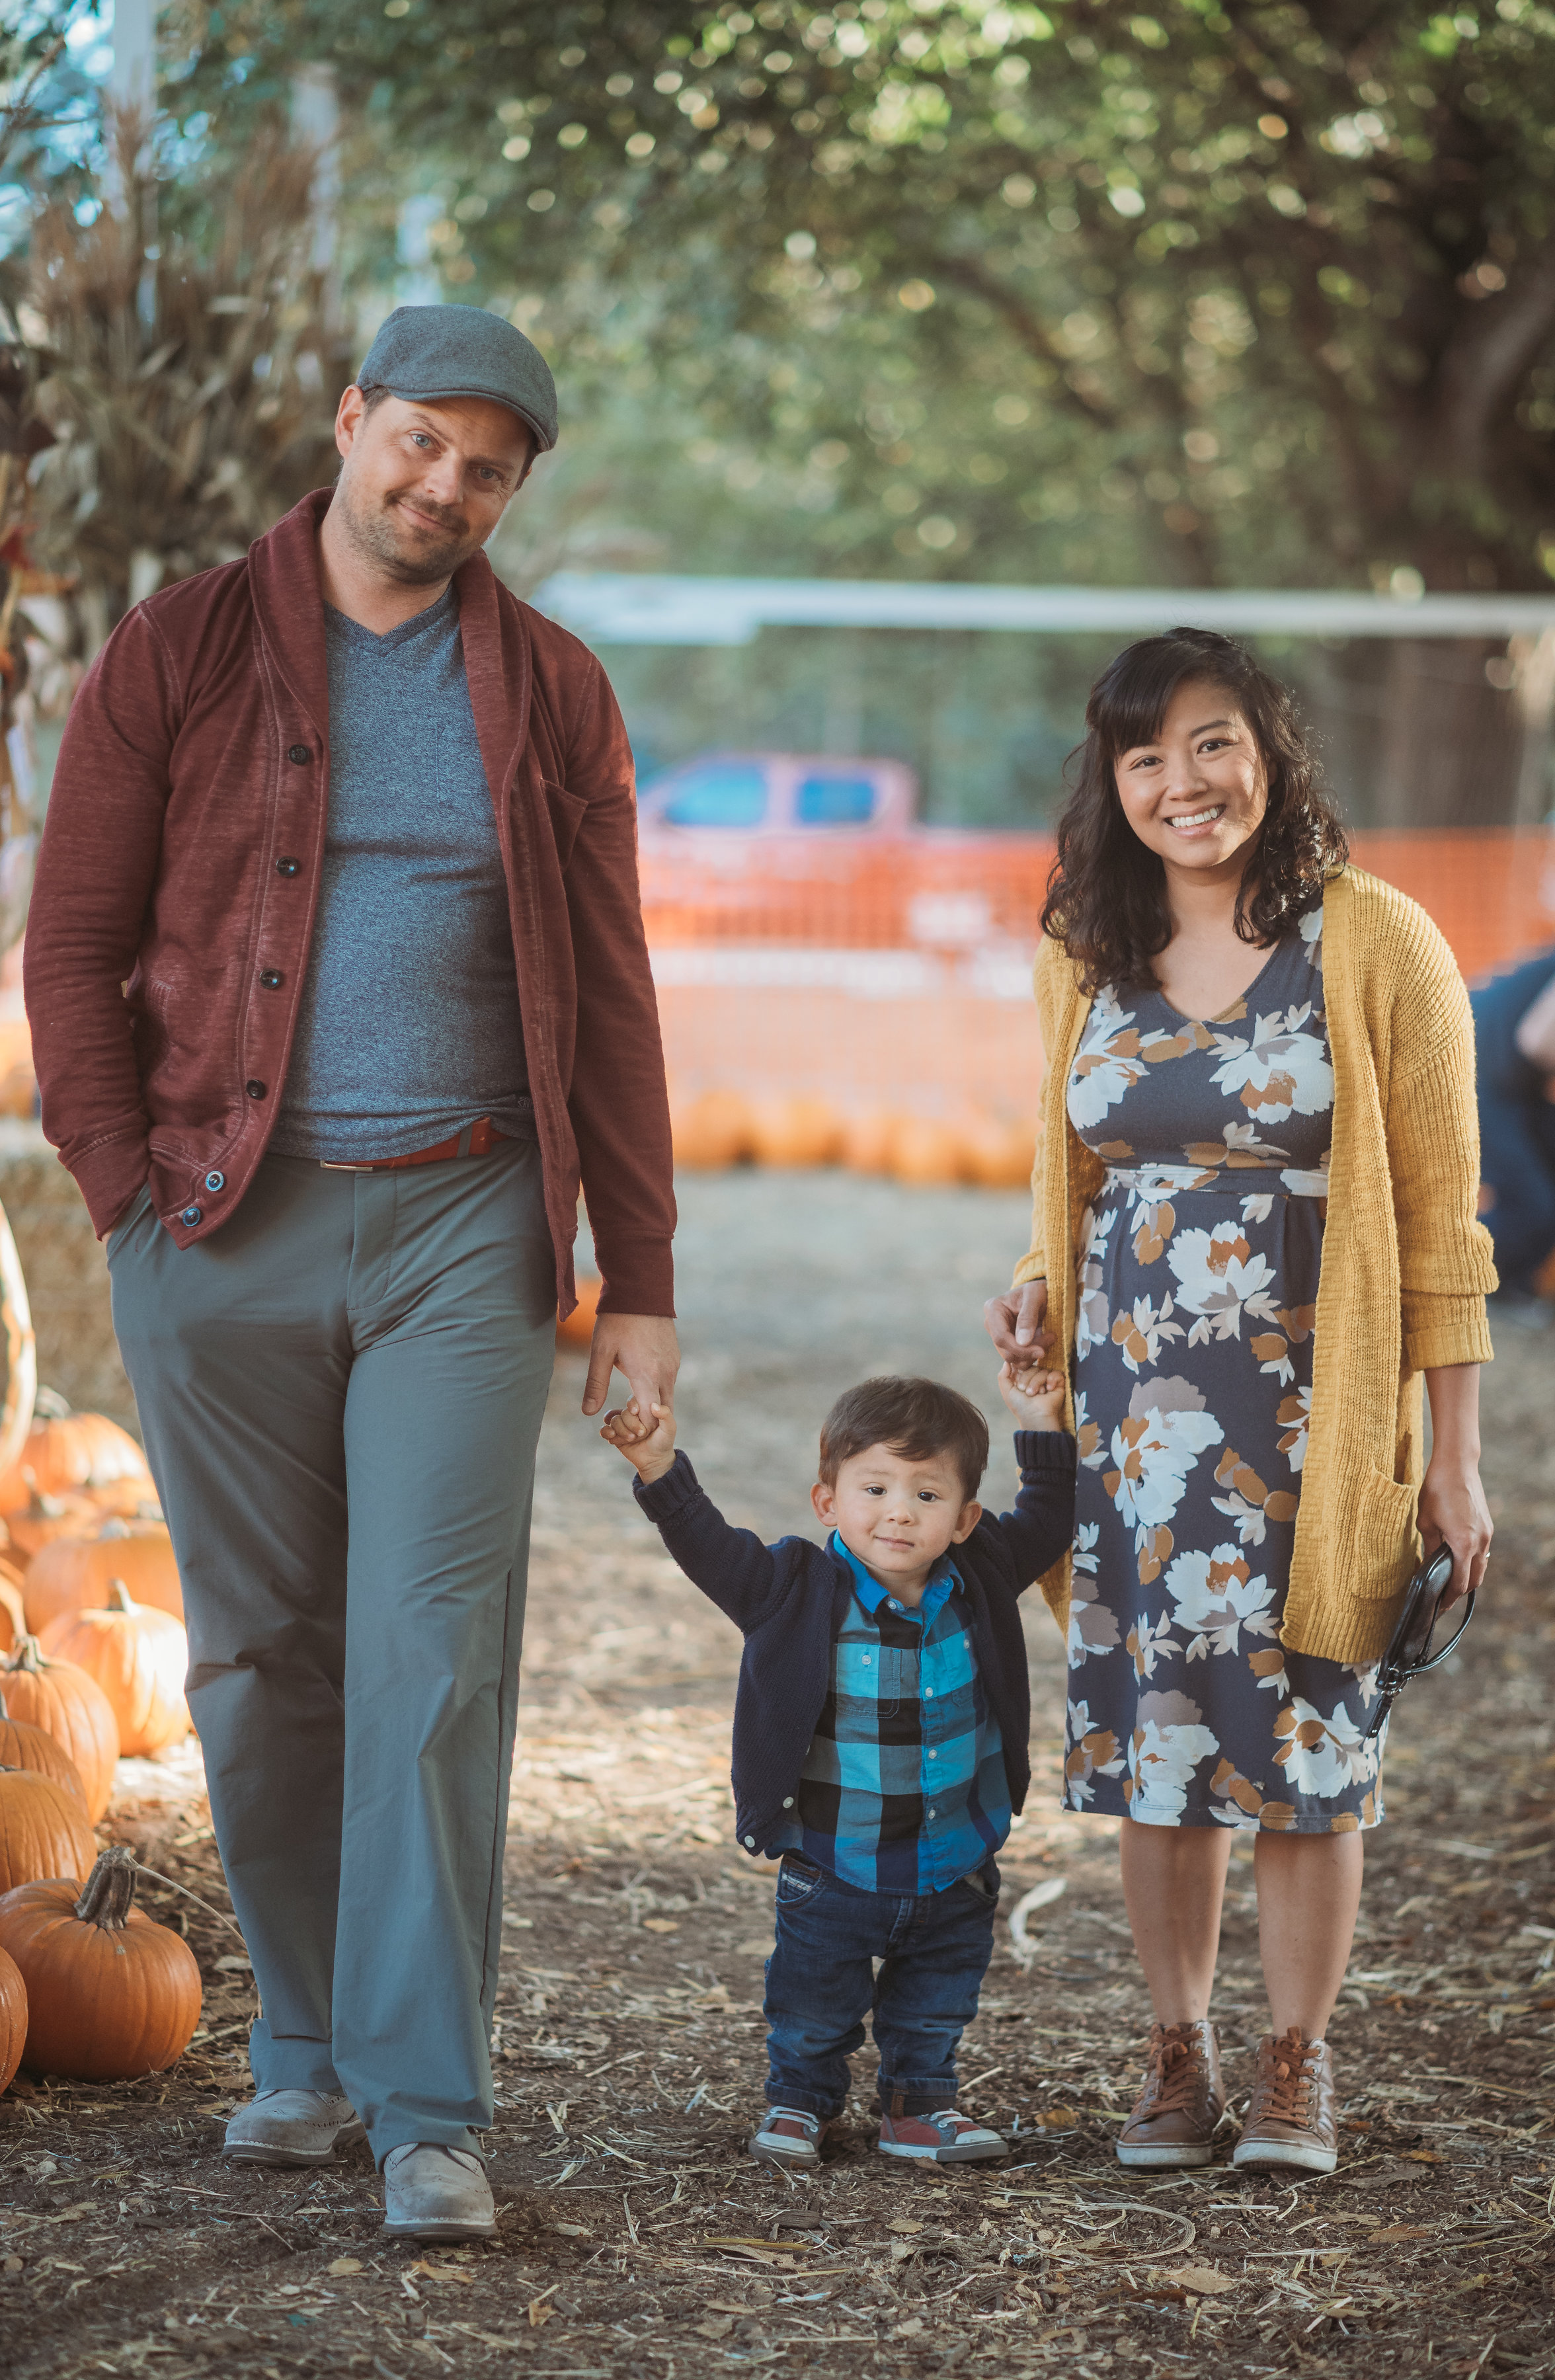 - There are so many directions to go for a fall photo shoot, but I love incorporating the beautiful colors that fall and fall festivals provide! Here, the family keeps the subtle blue/grey element and gives a fall vibe by adding a rust-colored sweater for Dad and a mustard cardigan for Mom. And darling Son's outfit adds dimension with the plaid and jacket!